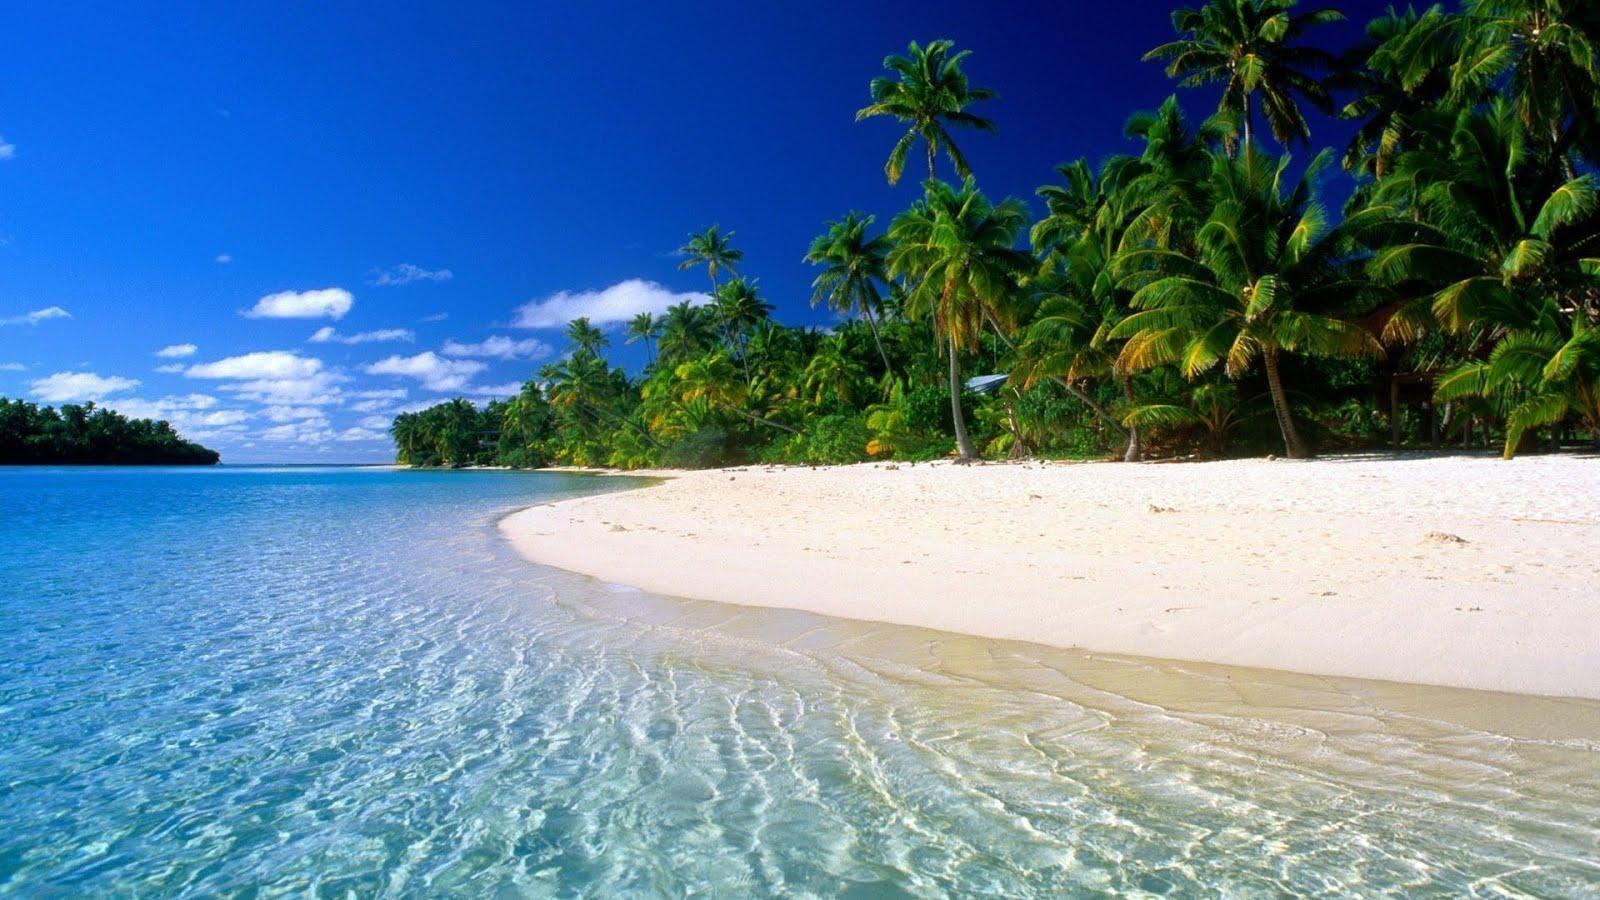 Caribbean Pictures Wallpaper Posted By Samantha Walker